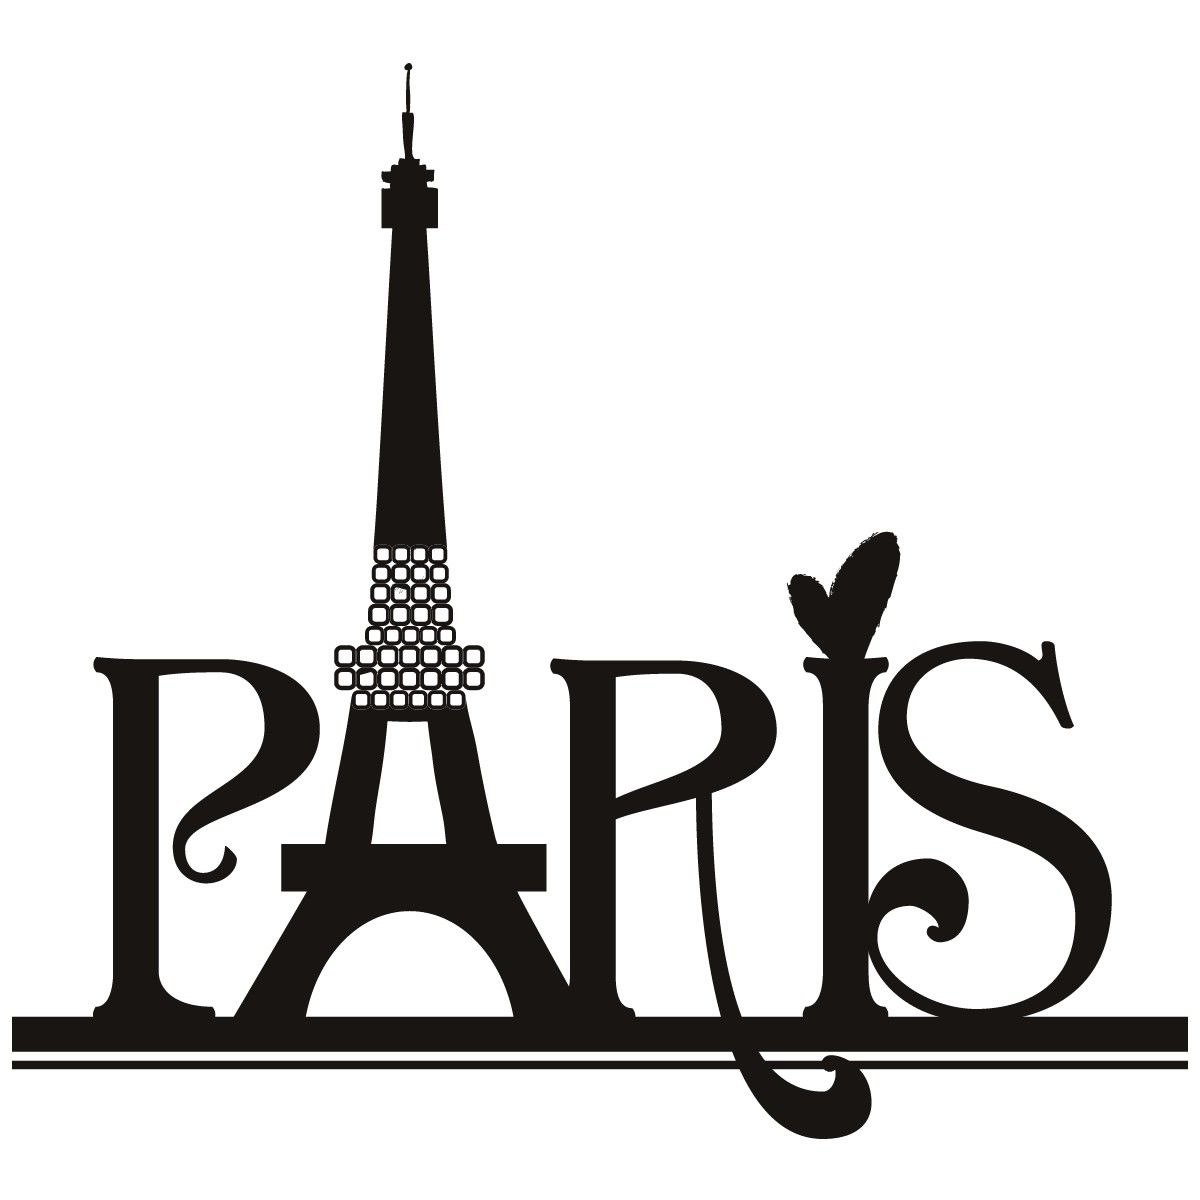 Paris Eiffel Tower Wall Art Sticker 30 Need To Adjust The